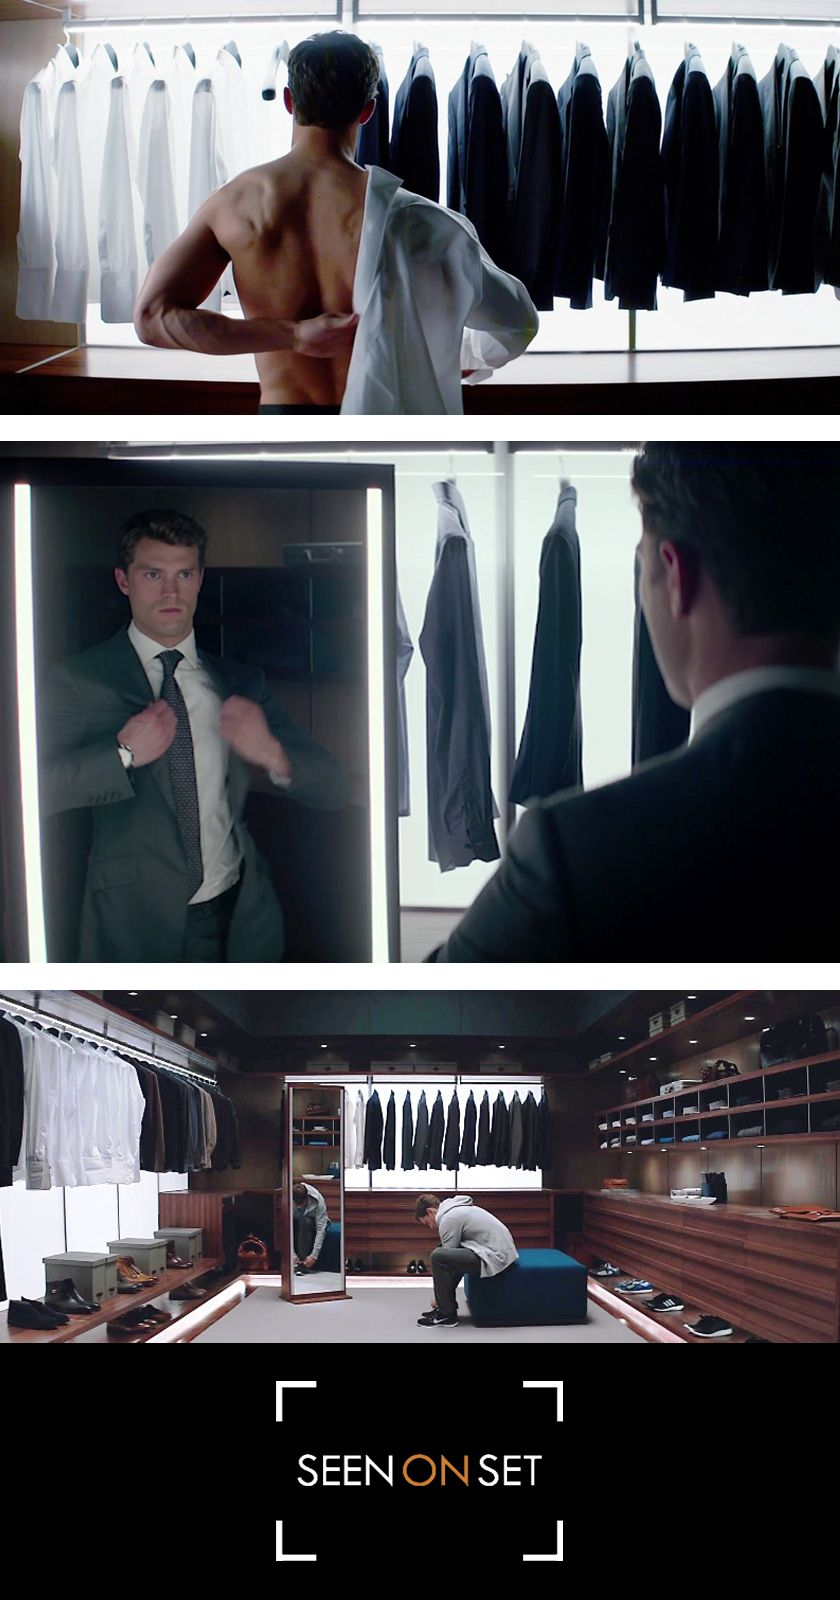 Christian Grey S Wardrobe In Fifty Shades Of Grey Movie